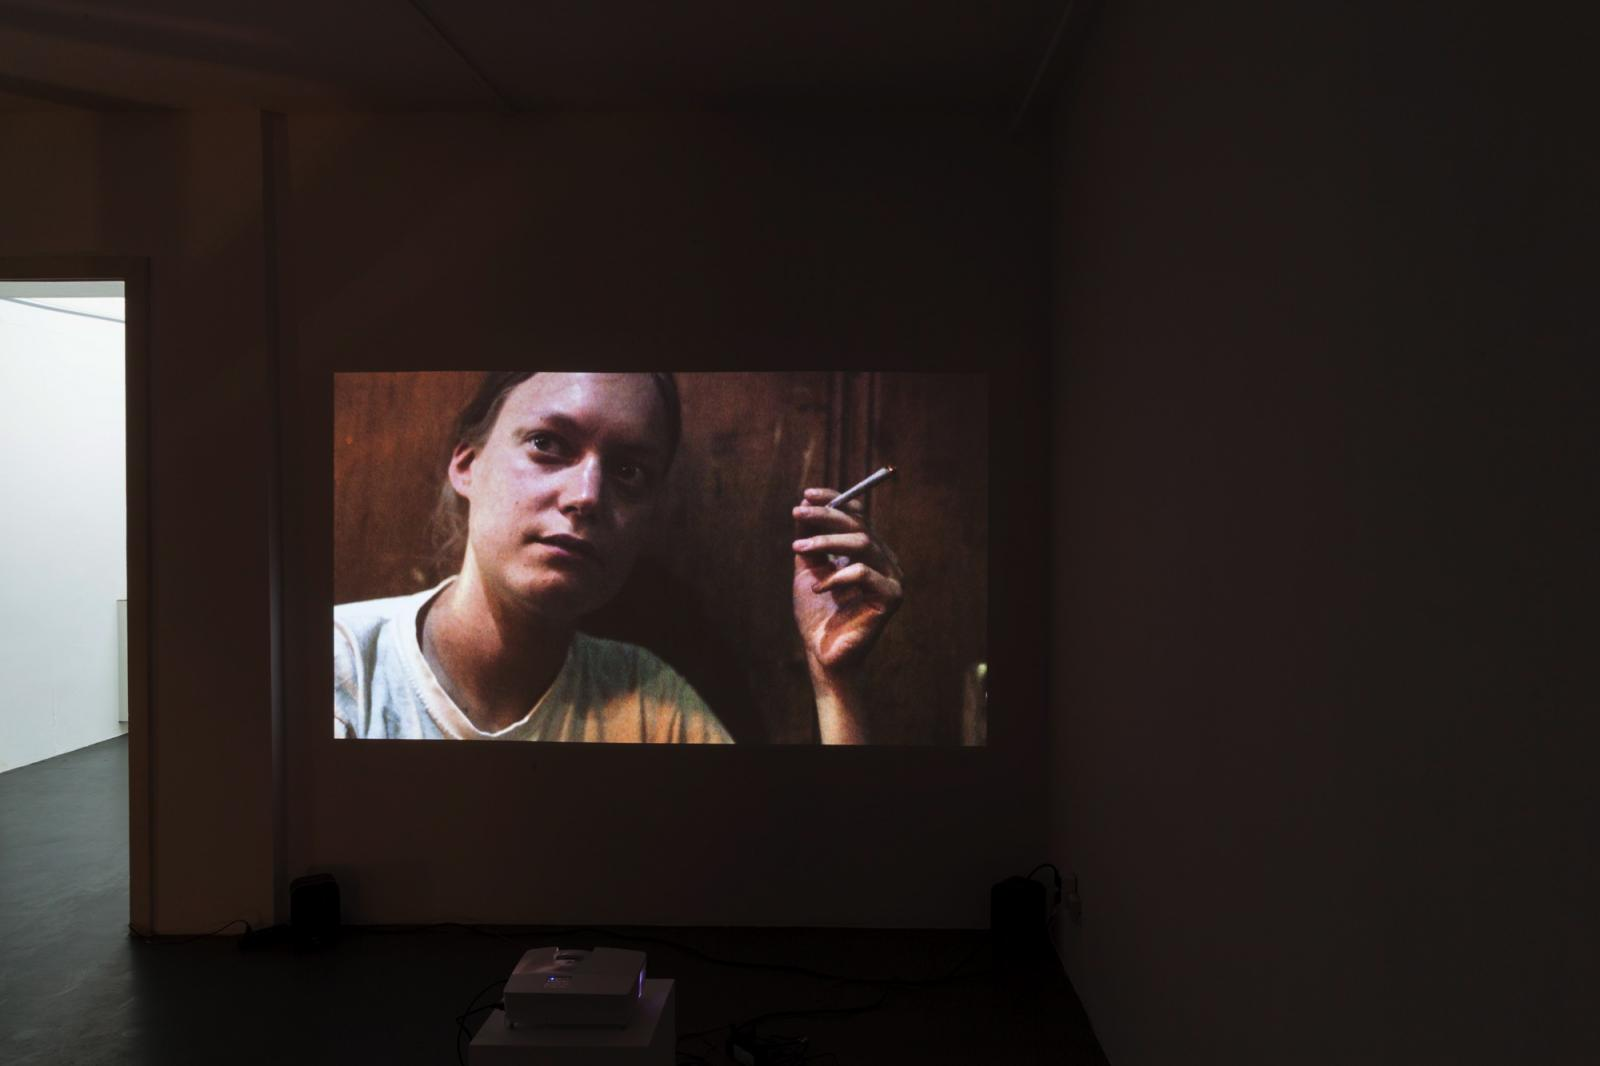 Annika Larsson The Discourse of the Drinkers, 2017,38 min loop, HD Video, Stereo Sound,  Colour,Courtesy of the Artist